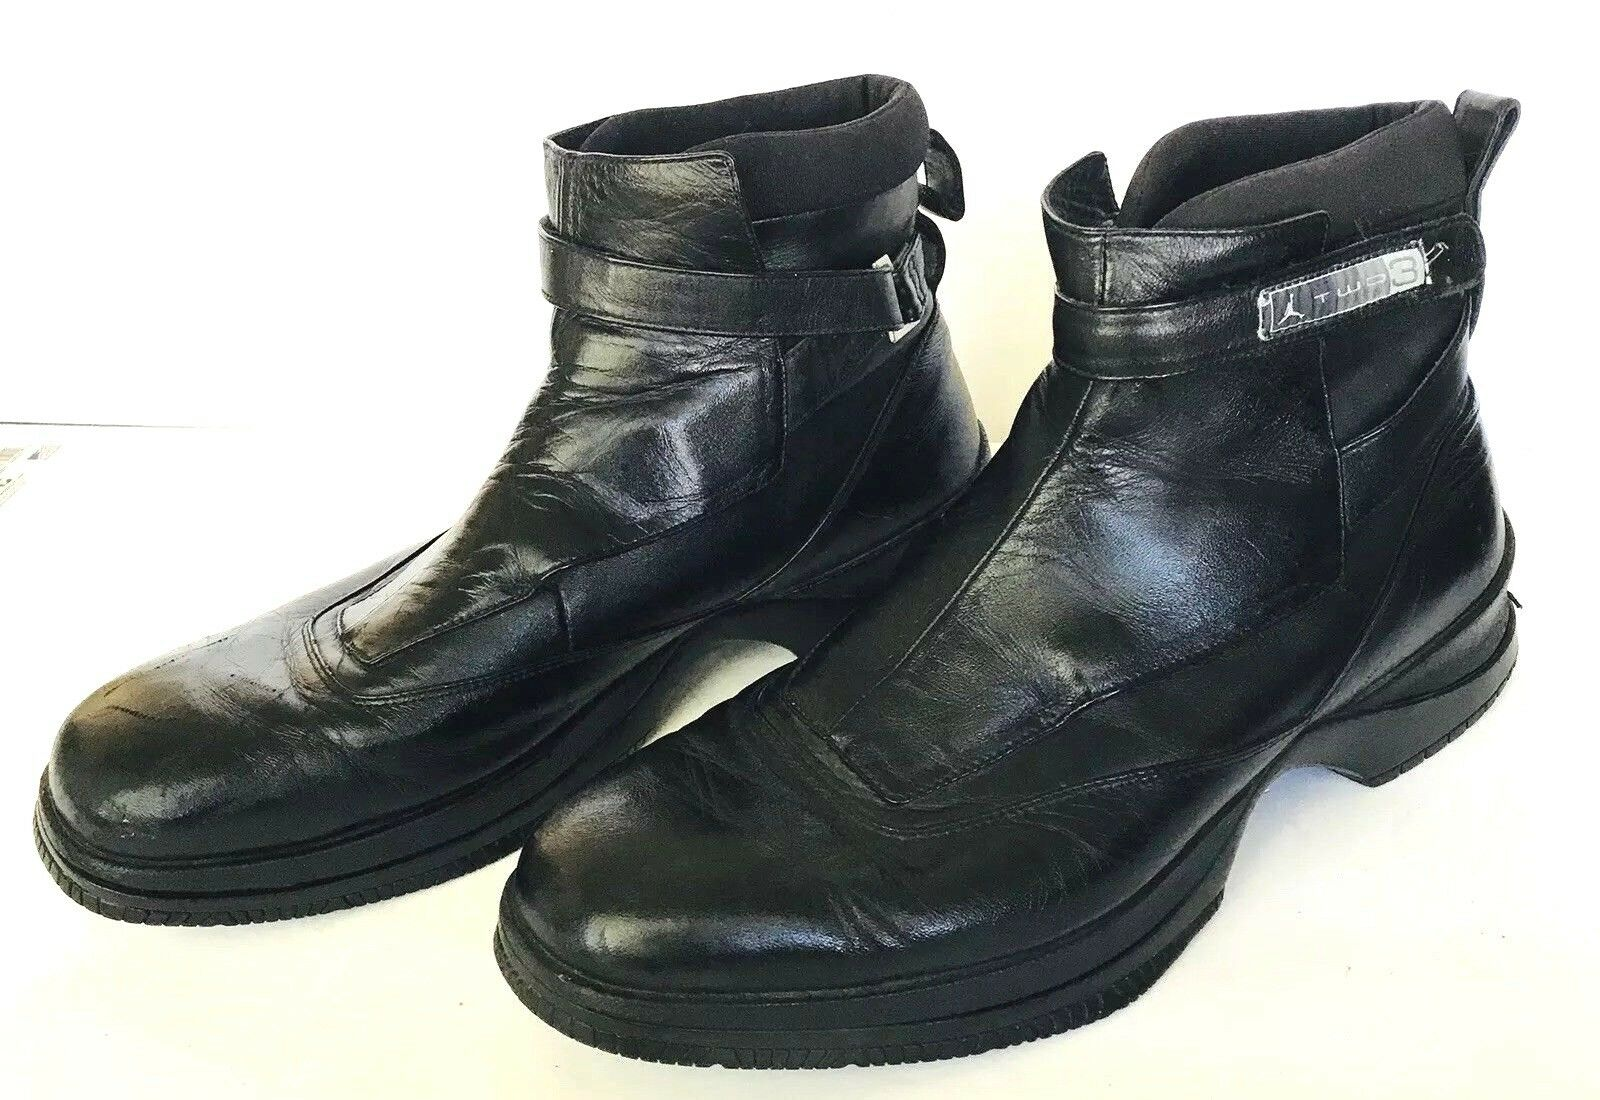 NIKE AIR JORDAN ELEGANTE TWO3 LEATHER BLACK ANKLE ANKLE ANKLE BOOTS MENS SIZE 11 HTF 950163